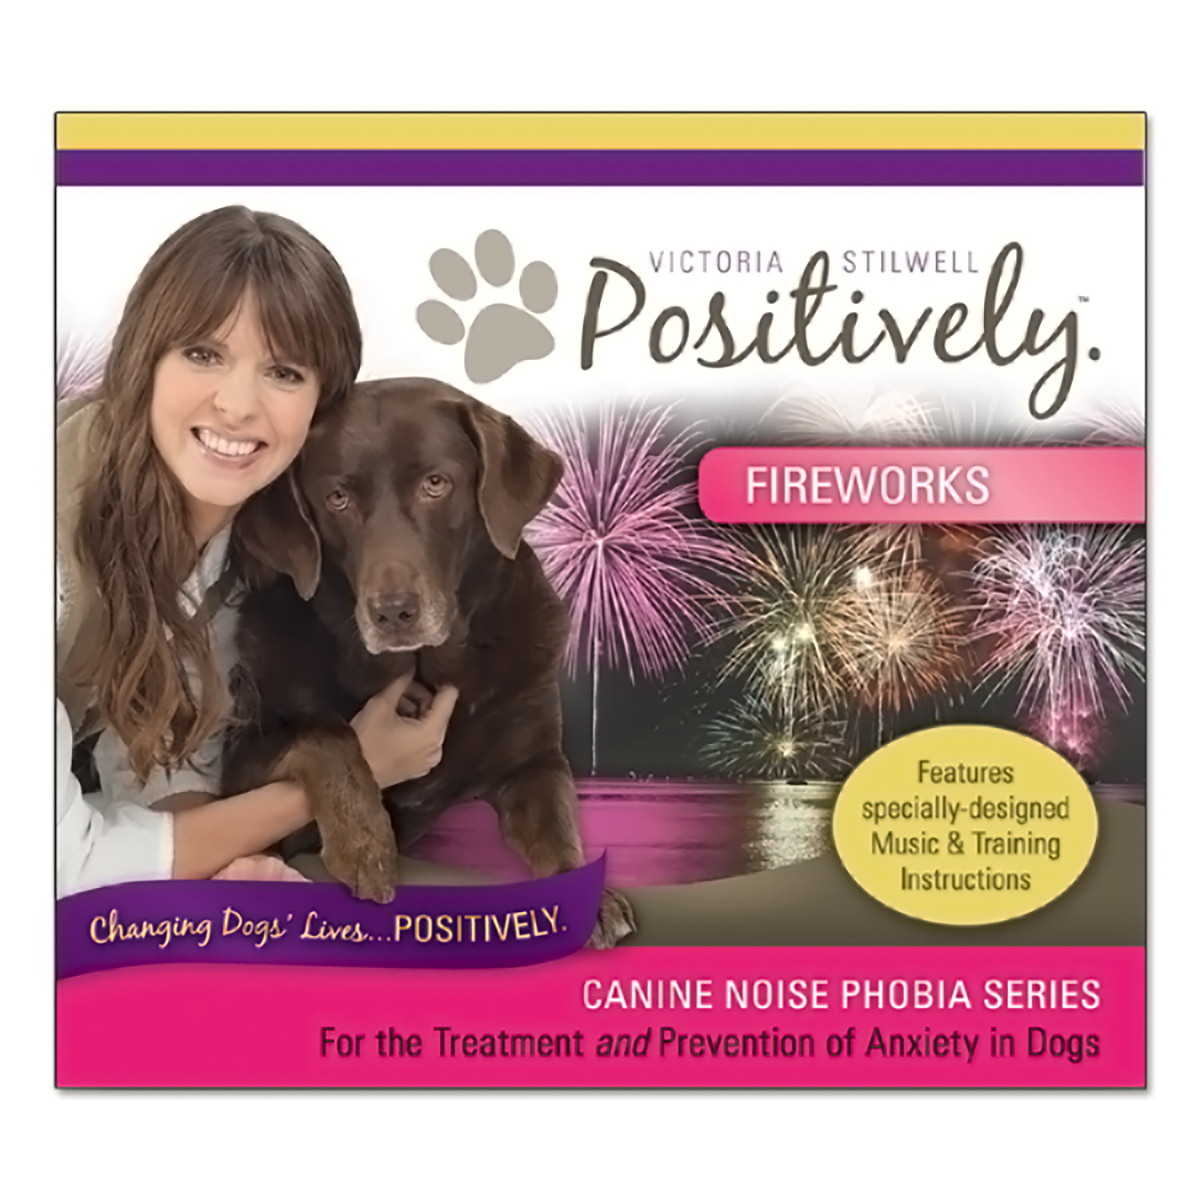 Canine Noise Phobia Series - Fireworks CD